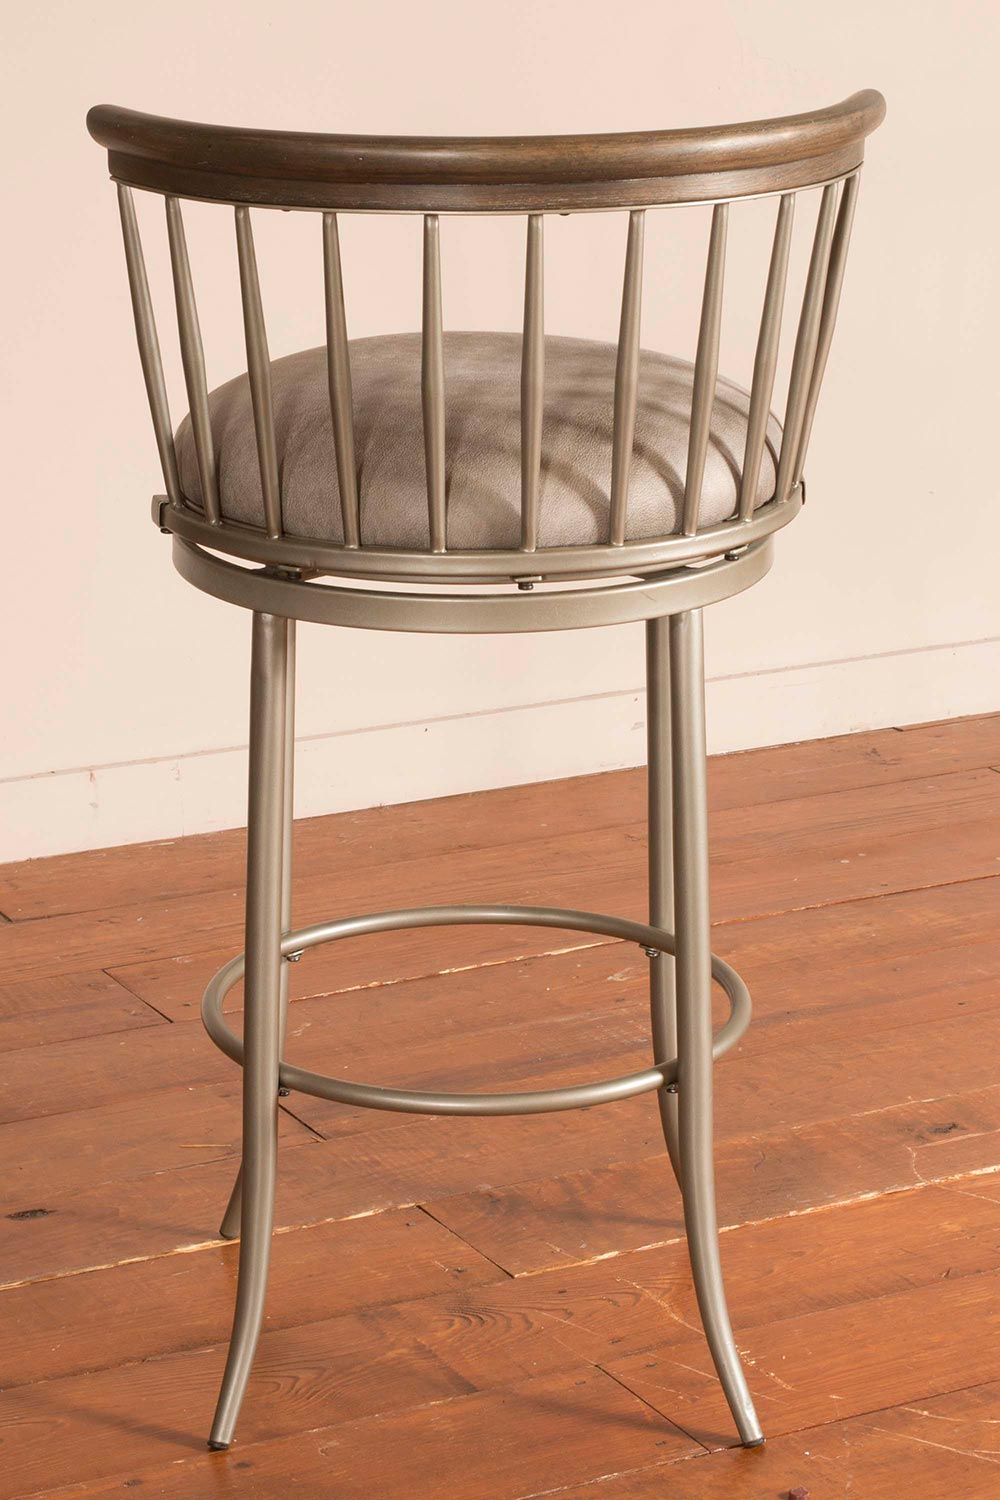 Hillsdale Cortez Swivel Counter Stool - Pewter/Espresso - Gray Faux Leather